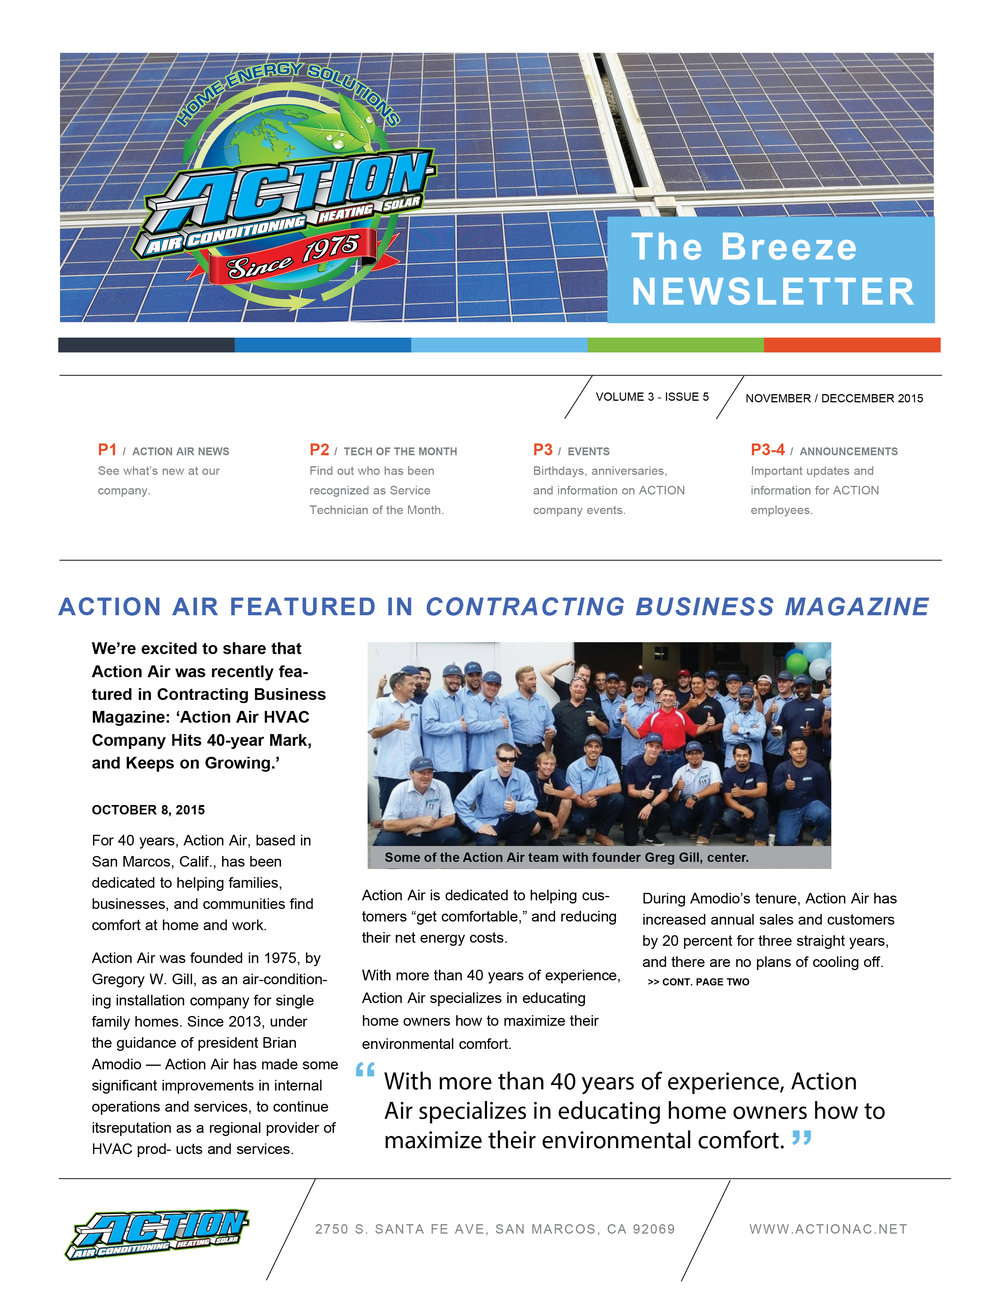 ACTION AIR NEWSLETTER-1.jpg